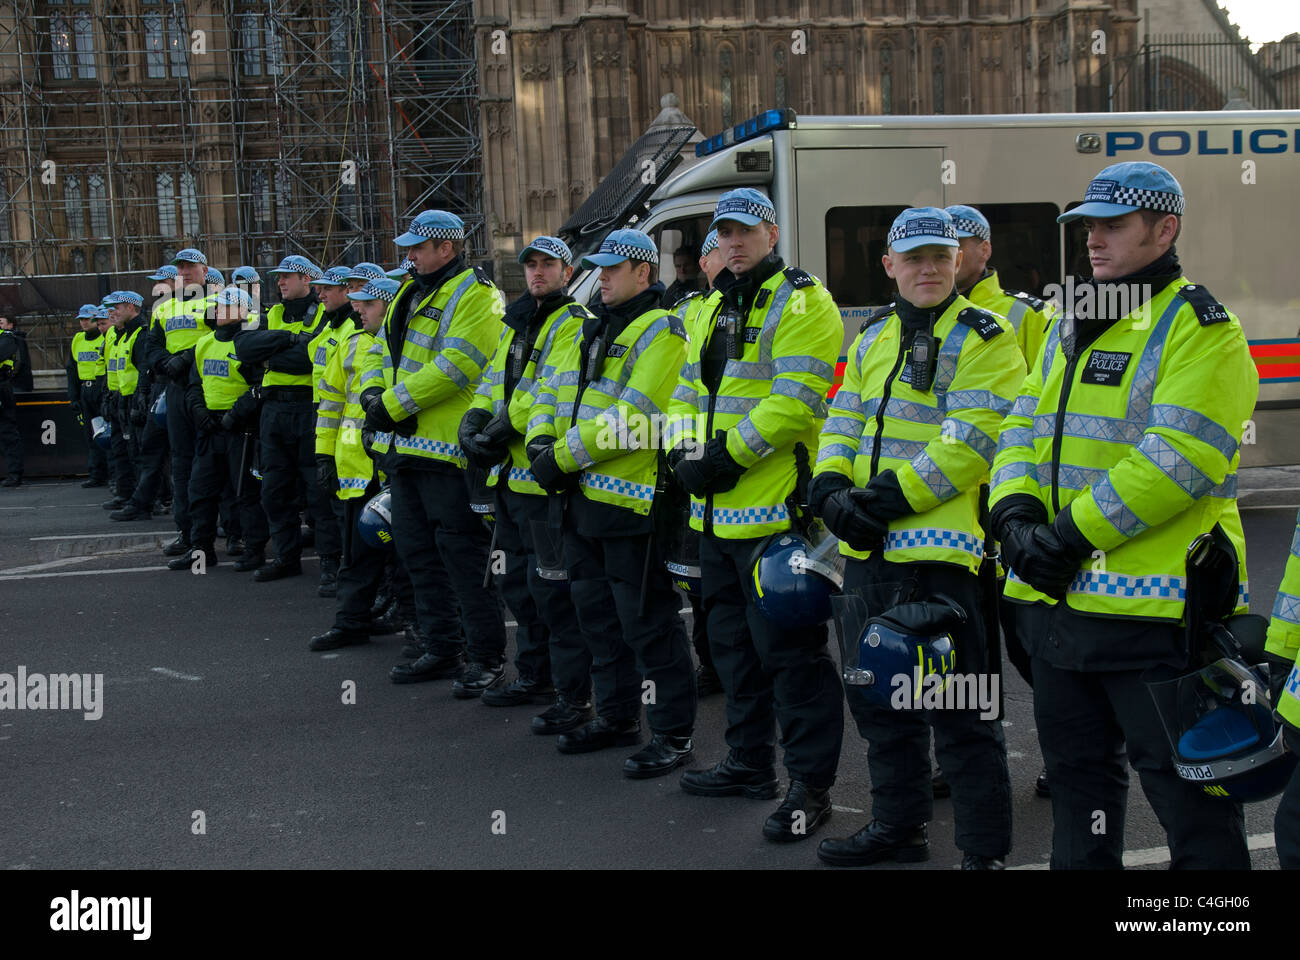 RIOT POLICE LINED UP AGAINST PROTESTERS - Stock Image